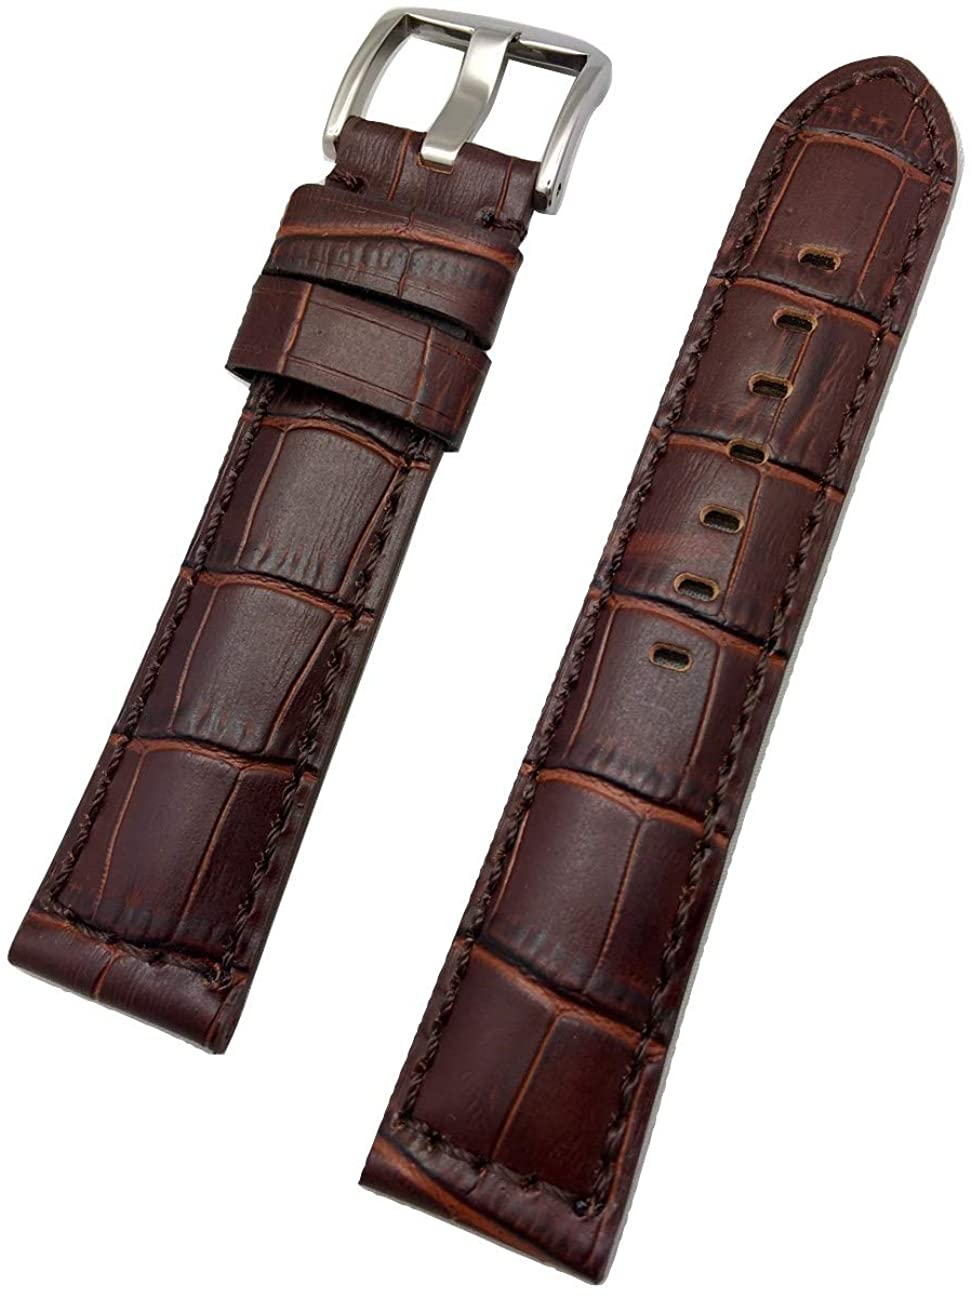 22mm Long, Brown Panerai Style, Sporty Genuine Leather Watch Band | Alligator Crocodile Grained Medium Padded Replacement Wrist Strap Bracelet that brings New Life to Any Watch (Mens Long Length)